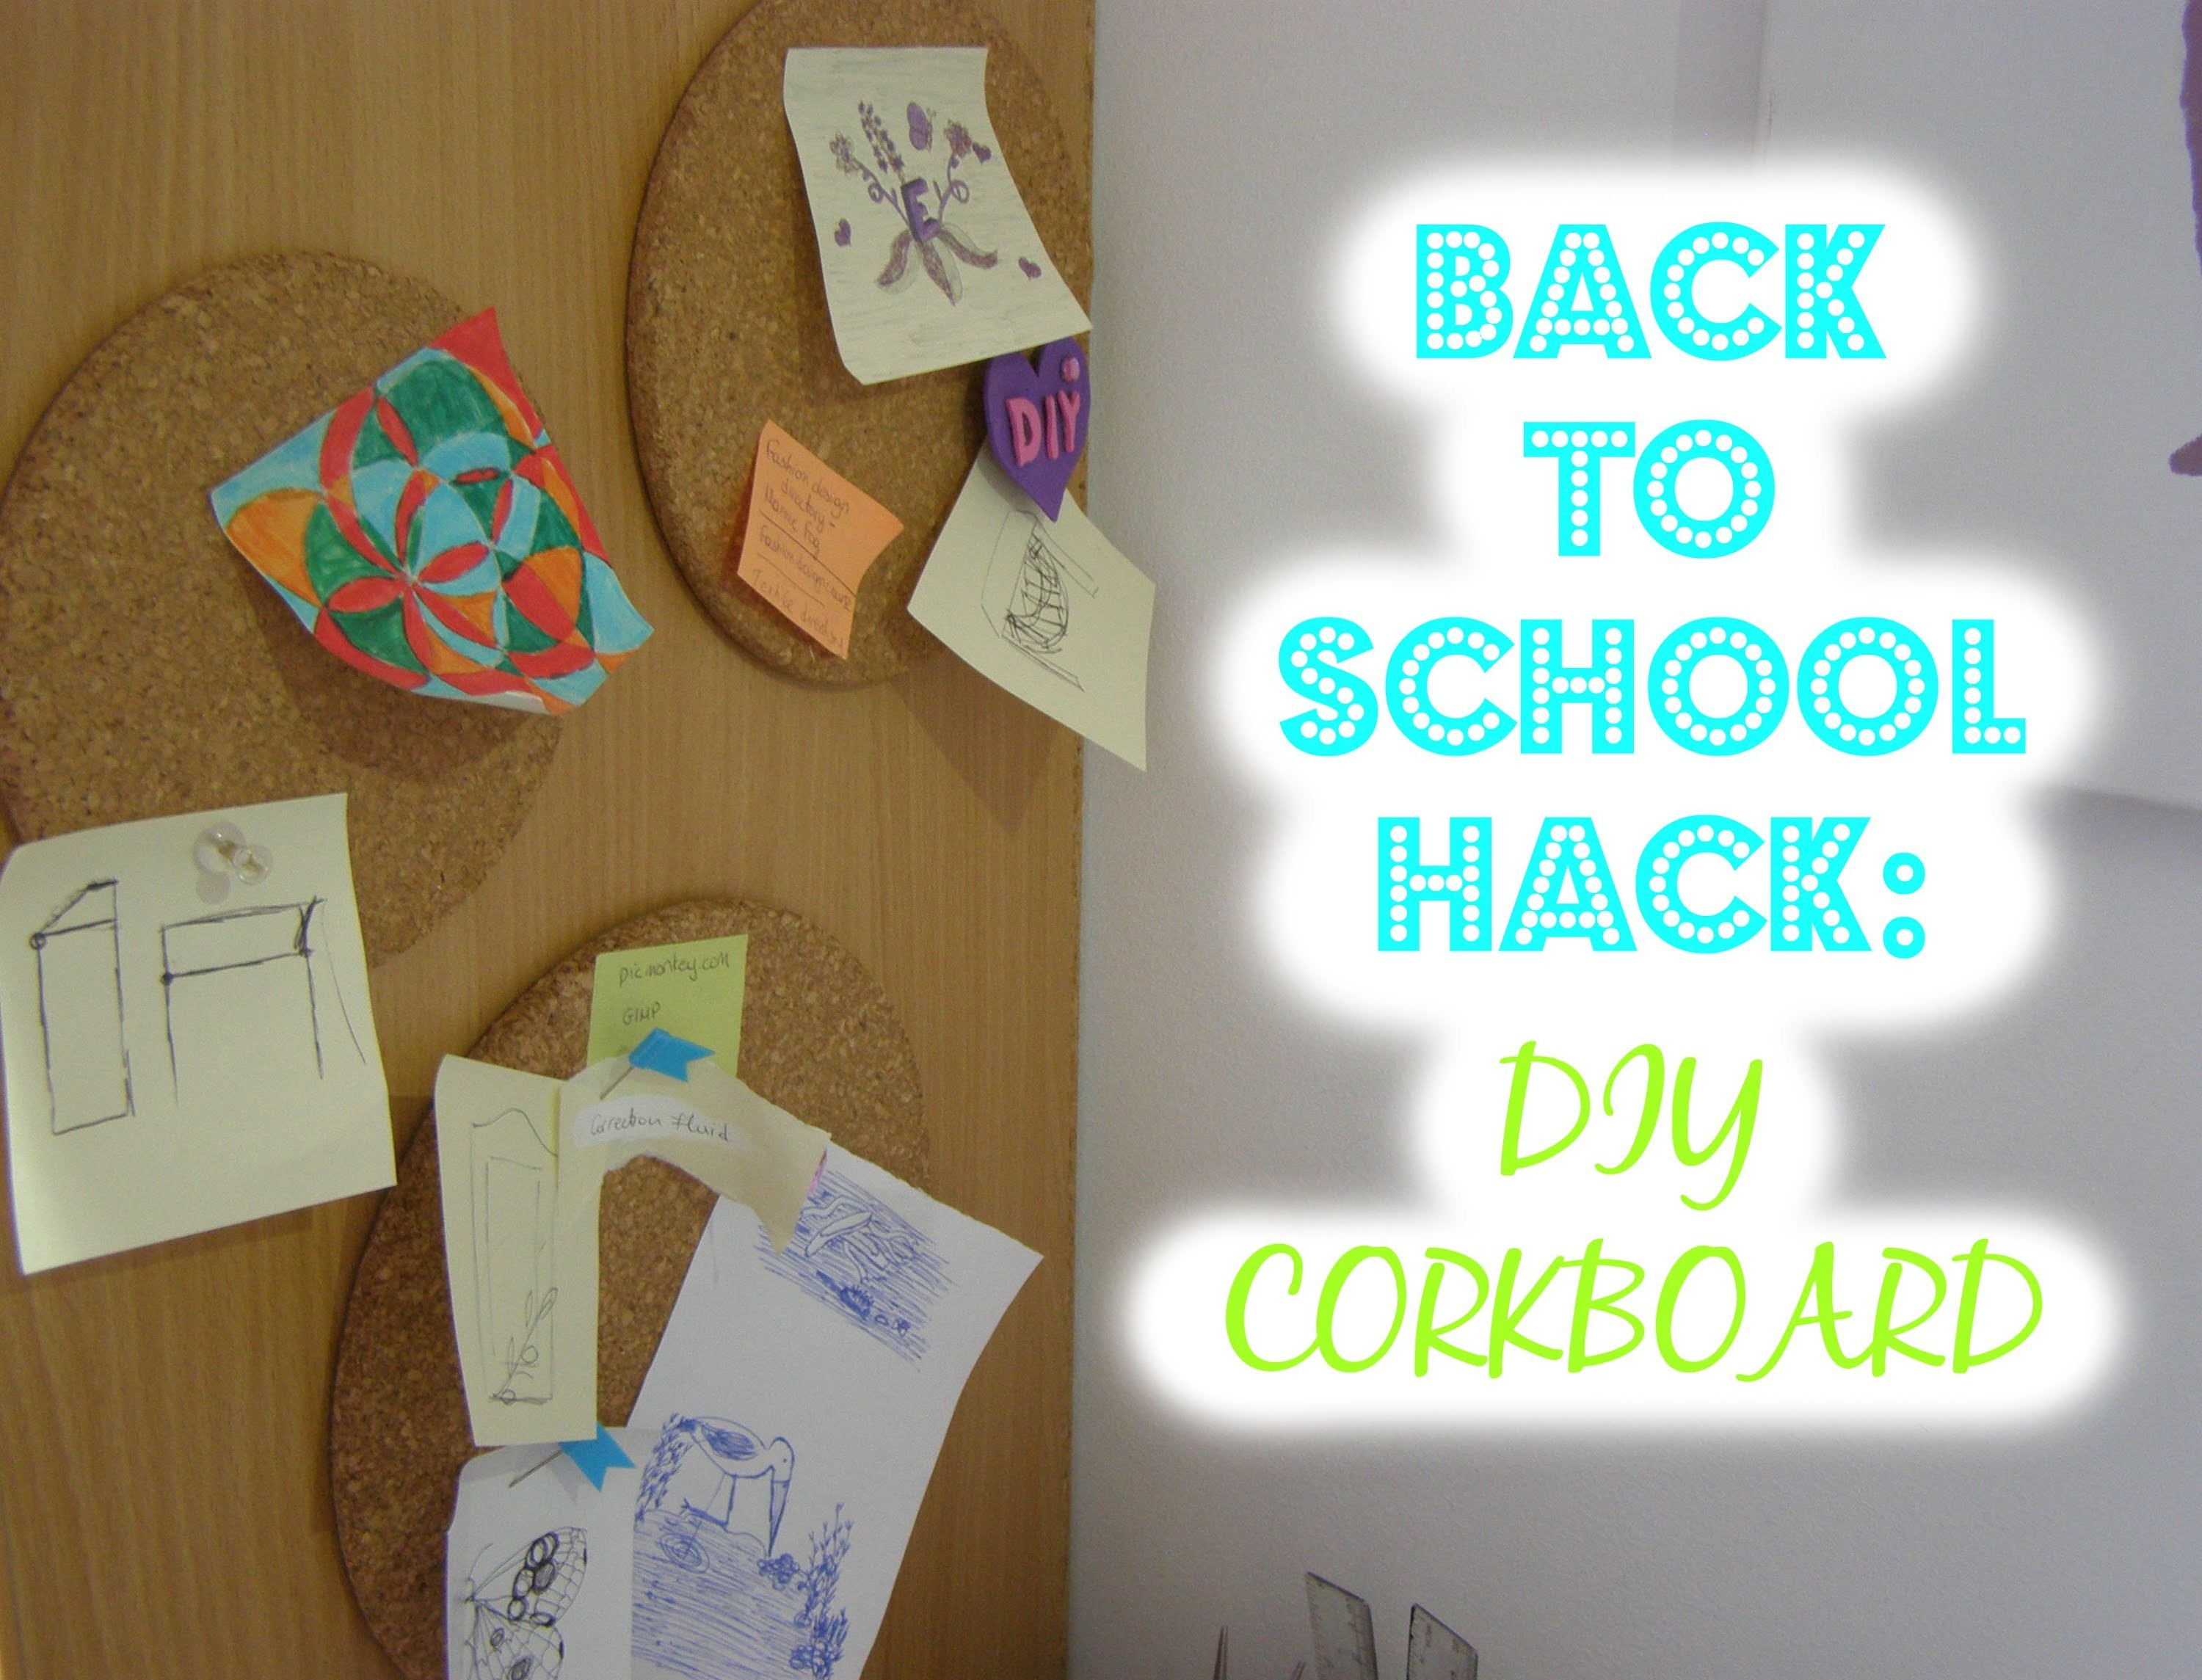 Back to school hack: DIY corkboard